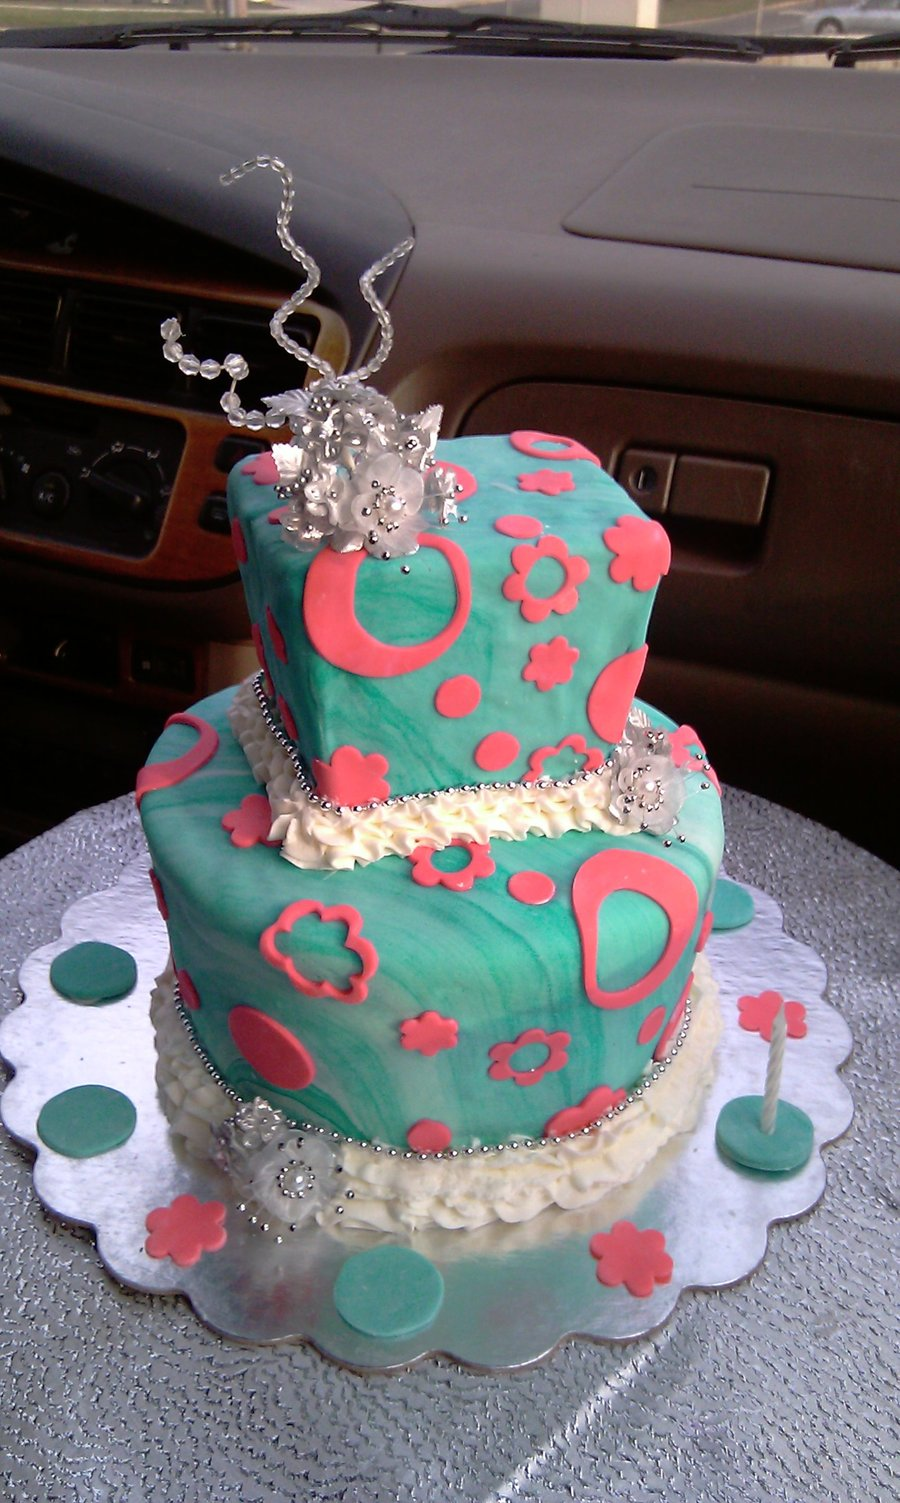 Marbled Turquoise And Pink Cake  on Cake Central